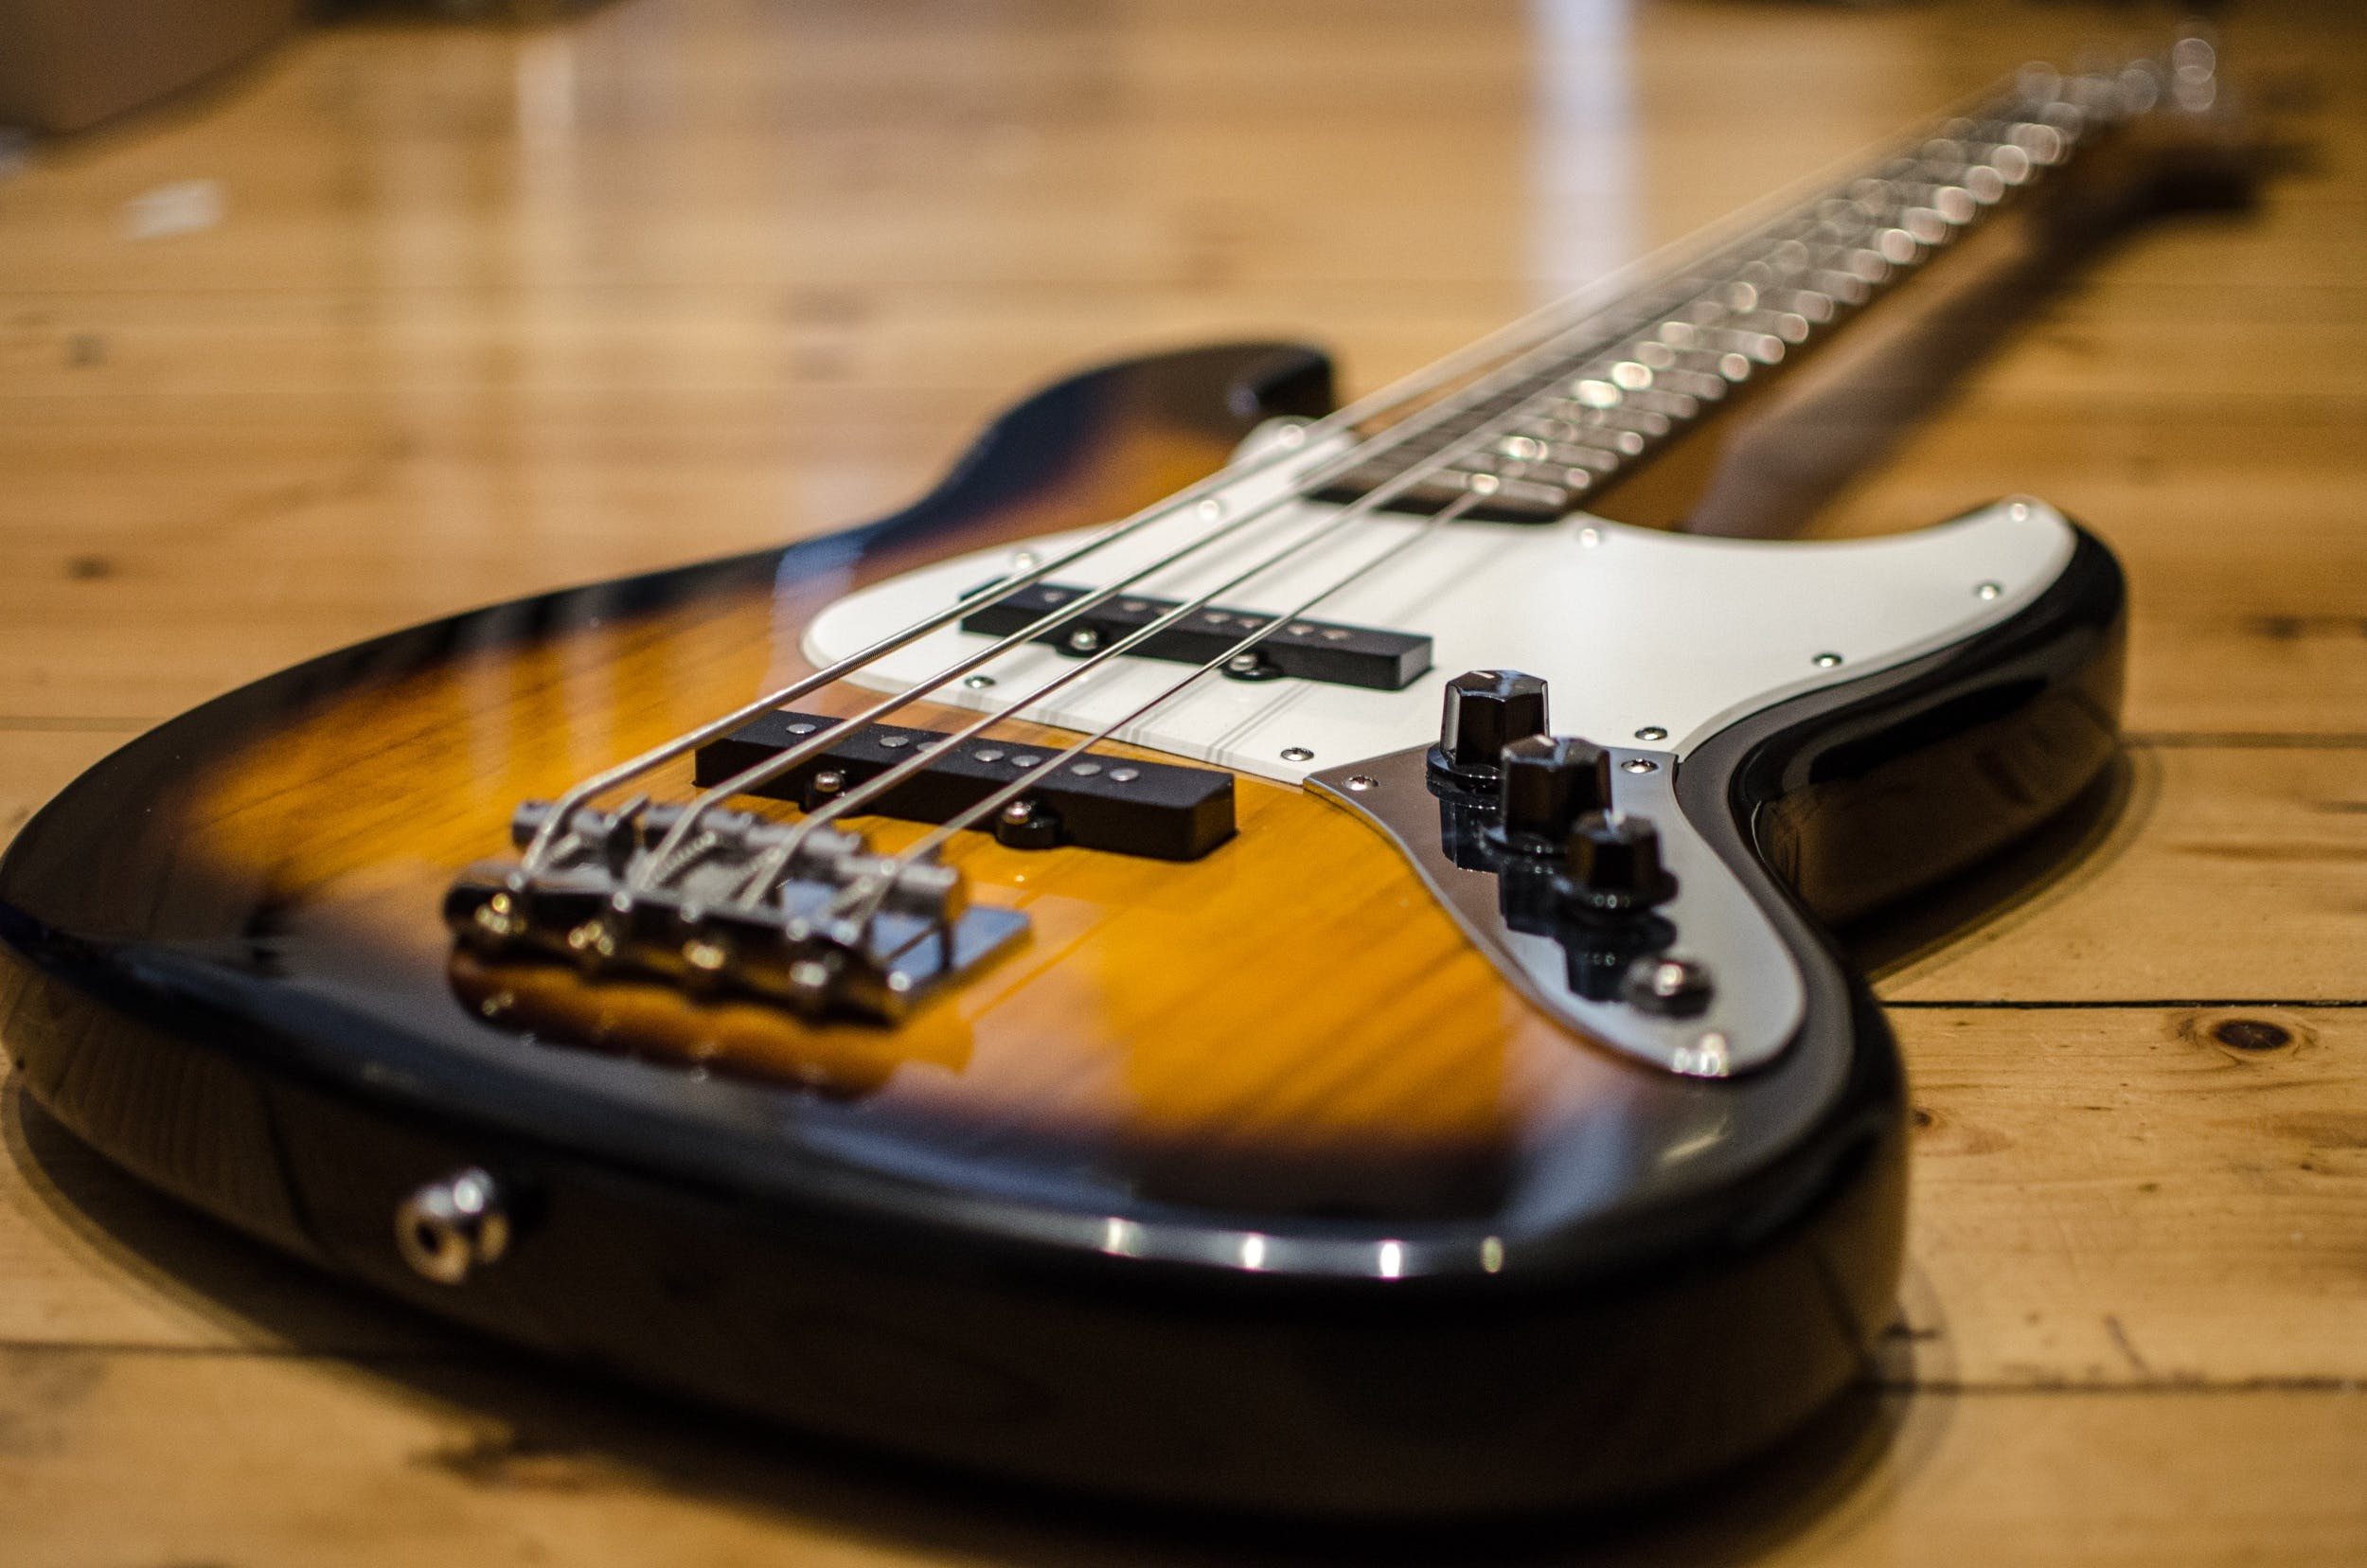 Free stock photo of music, musical instrument, instrument, bass